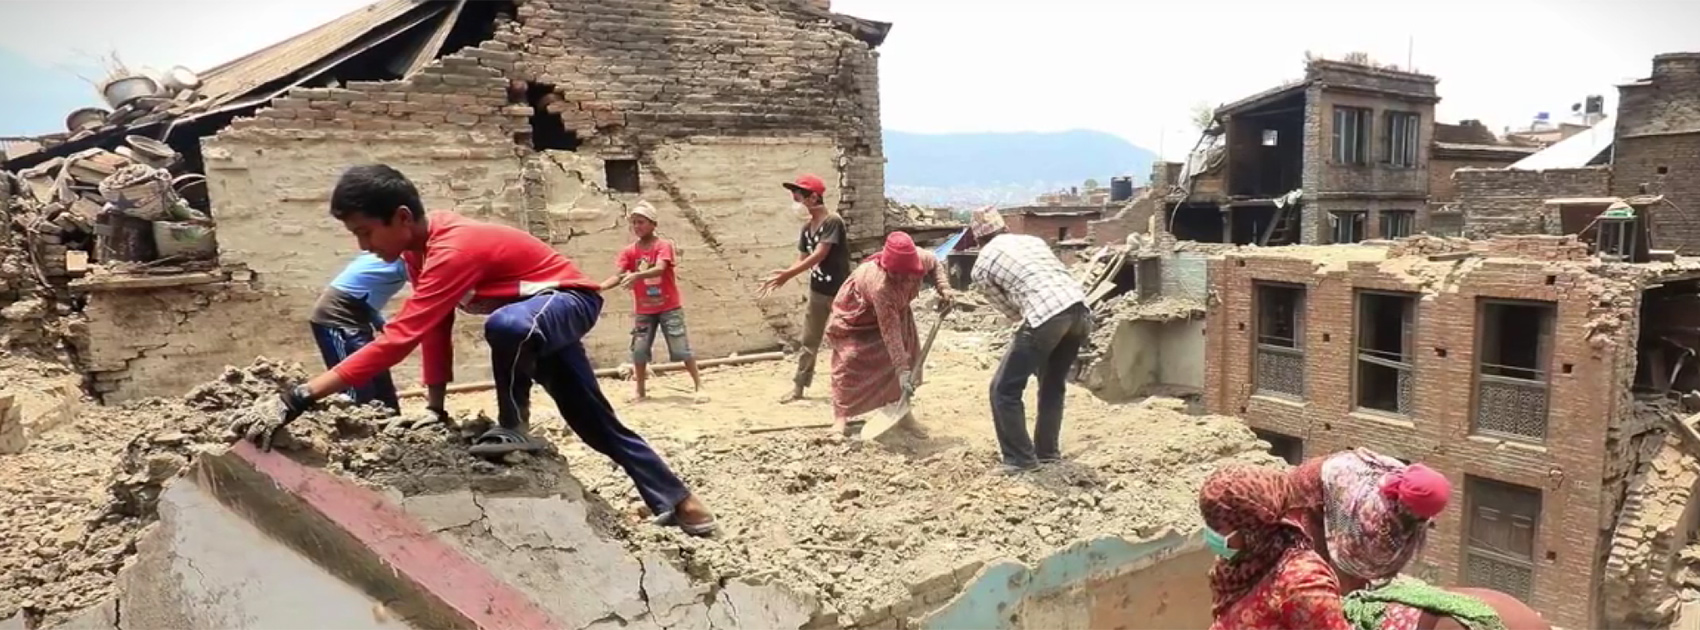 Rebuilding Nepal one brick at a time. Photo credit: World Bank